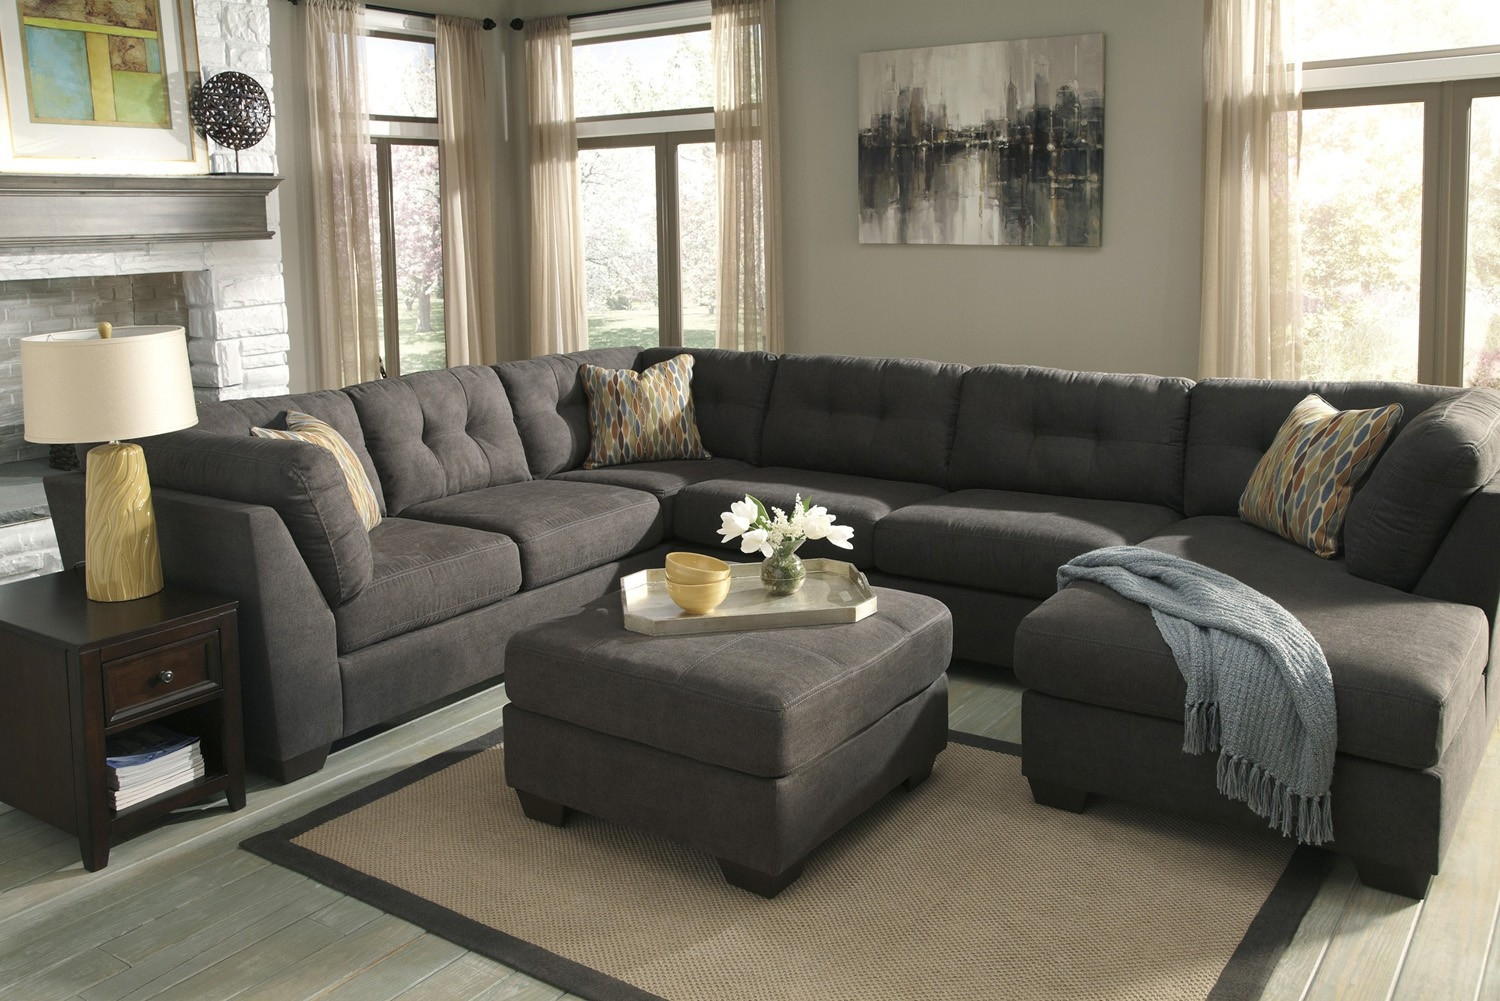 Delta City Steel 3 Piece Sectional Sofa With Left Arm Facing Throughout 3 Piece Sectional Sleeper Sofa (Image 9 of 15)